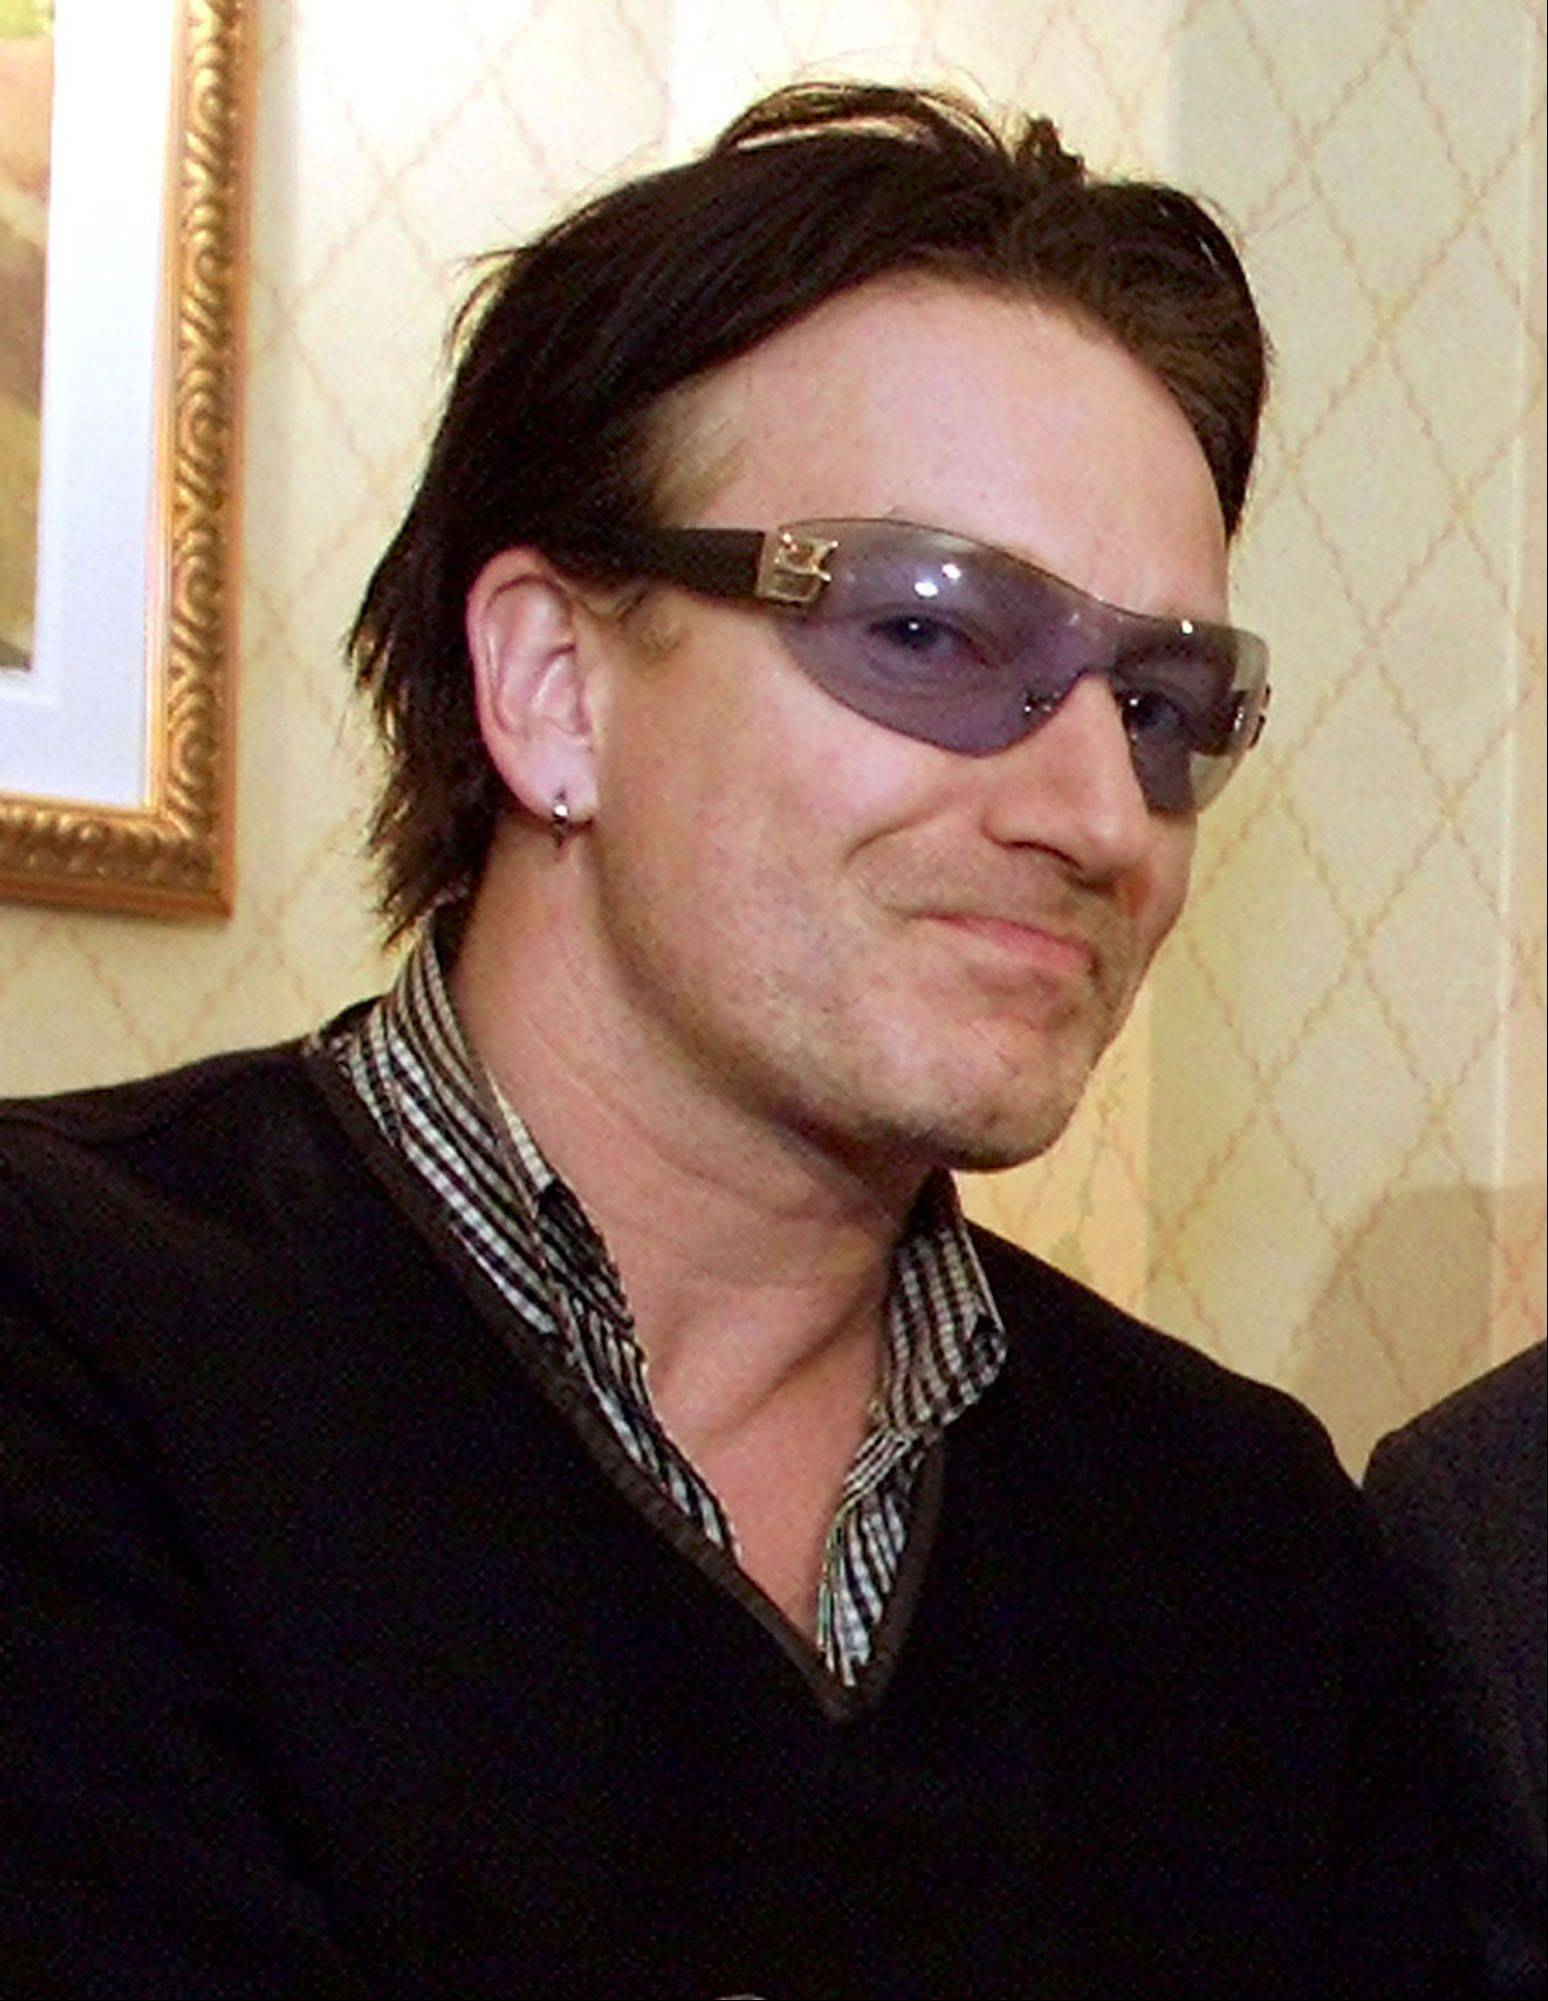 Bono, lead singer of the rock group U2 is seen at a news conference at the World Economic Forum in New York Saturday, Feb. 2, 2002. U.S. Treasury Secretary Paul O'Neill expressed admiration for rock star Bono, saying the U2 singer was well-informed on development issues and genuine in his concern. Bono, whose real name is Paul Hewson, recently addressed the World Economic Forum in New York and has become the main spokesman for Drop the Debt, which campaigns for the canceling developing world debt.